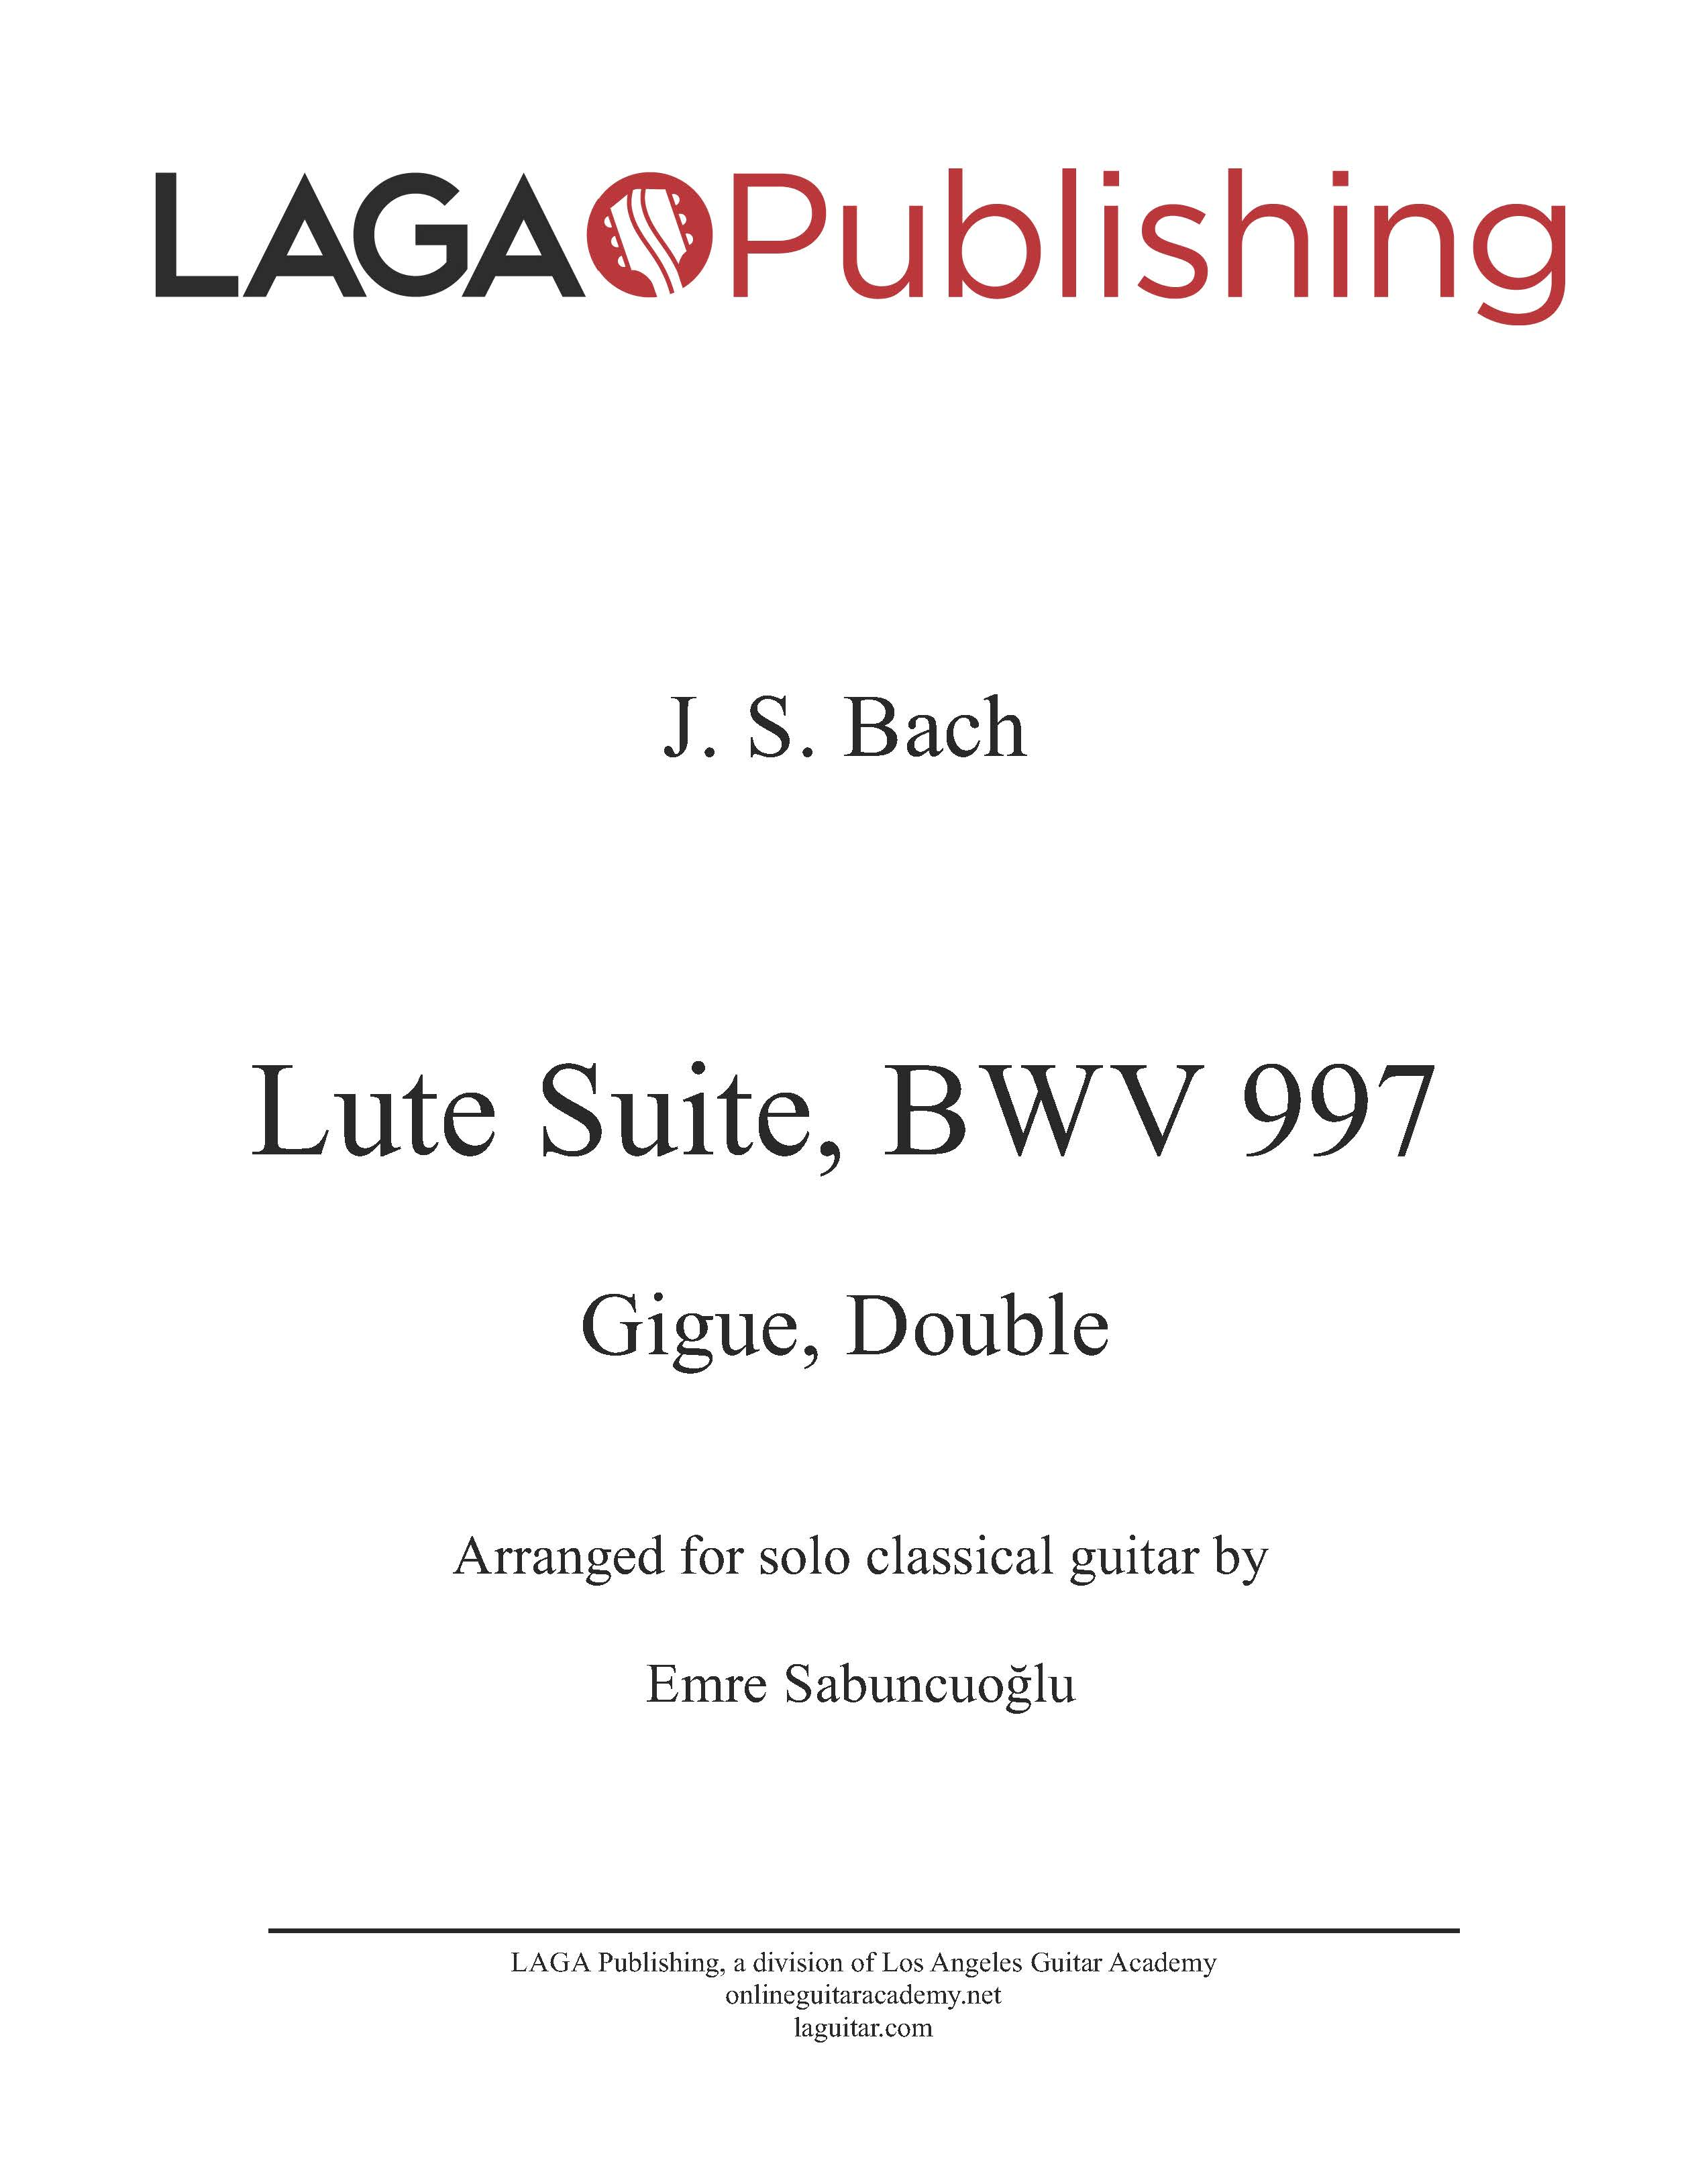 Double from the Partita for Lute in C Minor, BWV 997 by J.S. Bach